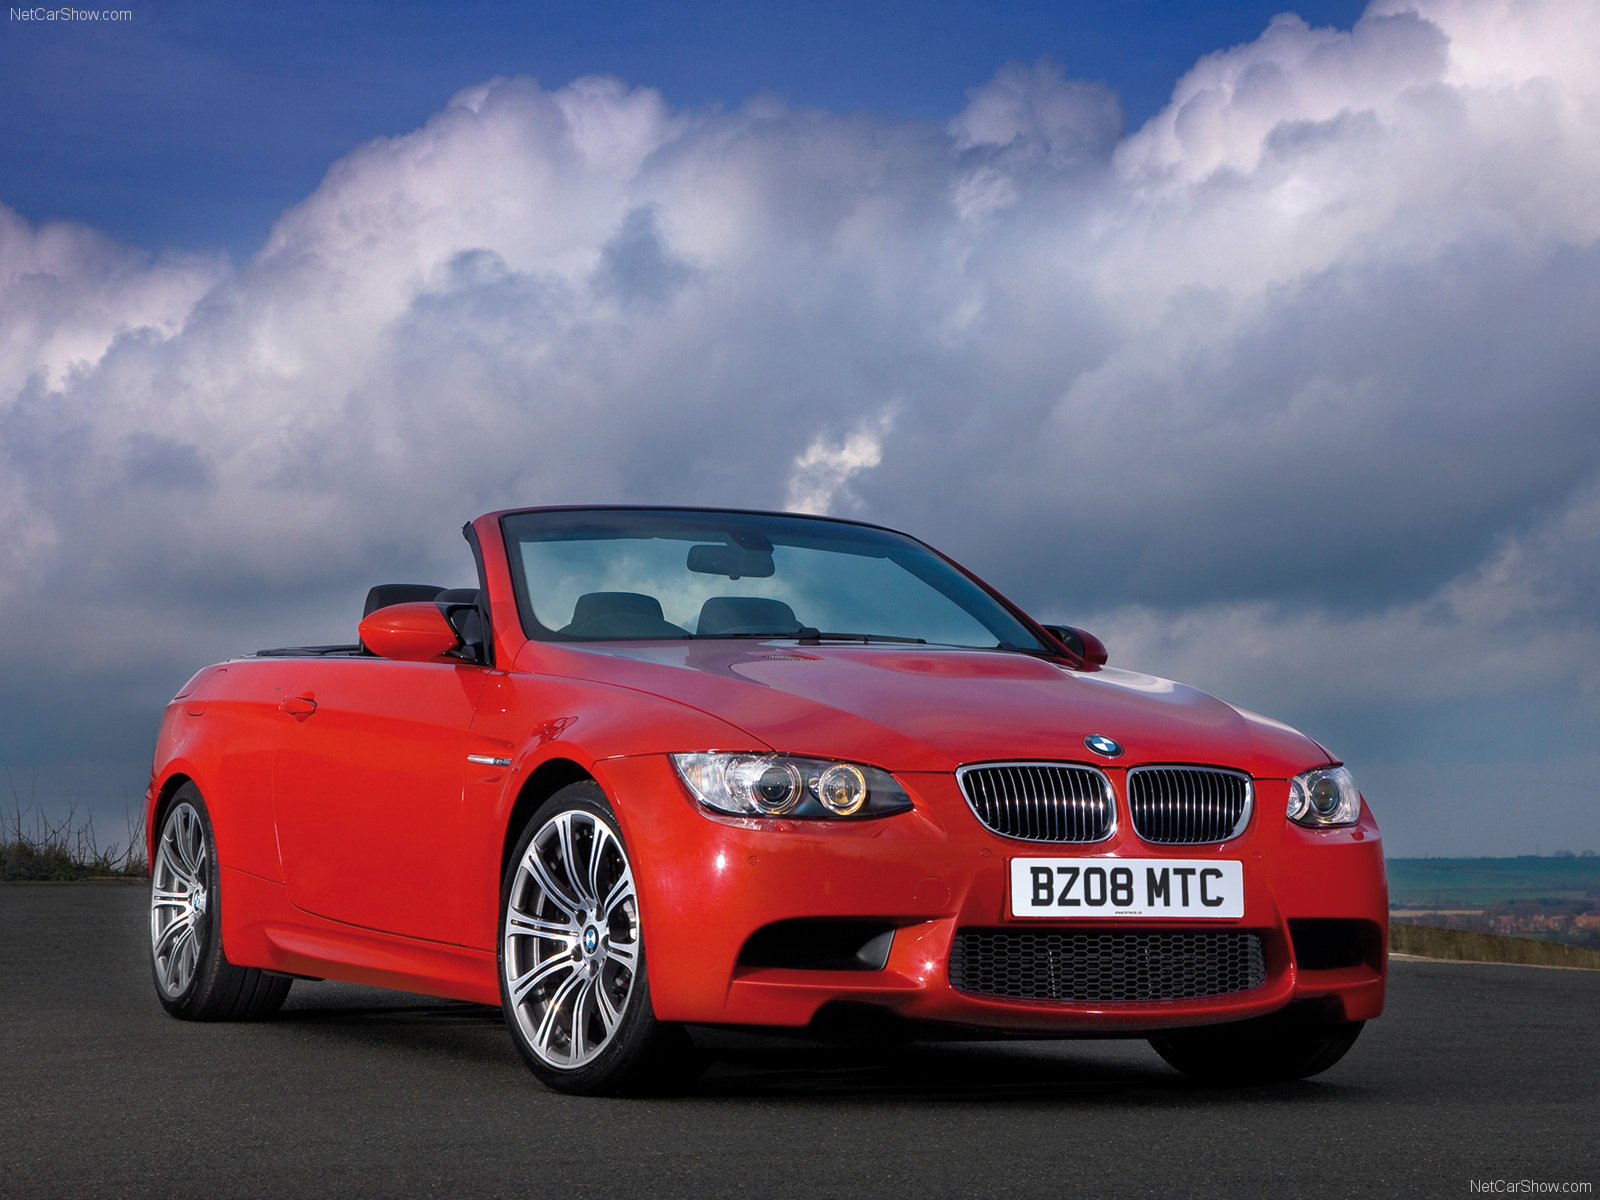 Bmw M3 E93 Convertible Photos Photogallery With 44 Pics